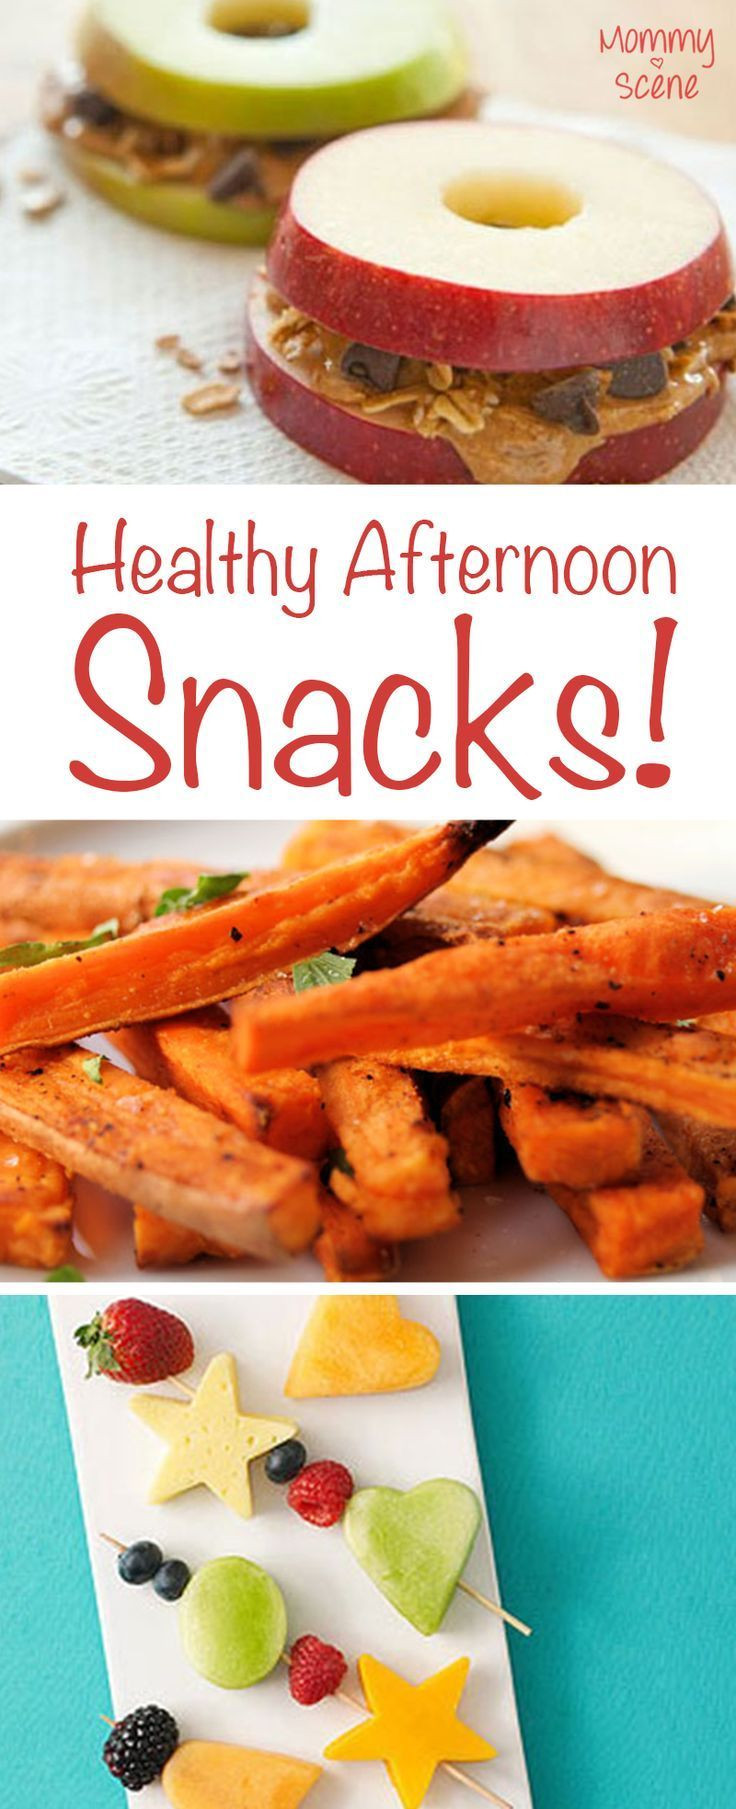 Healthy Afternoon Snacks  Best 25 Afternoon snacks ideas on Pinterest